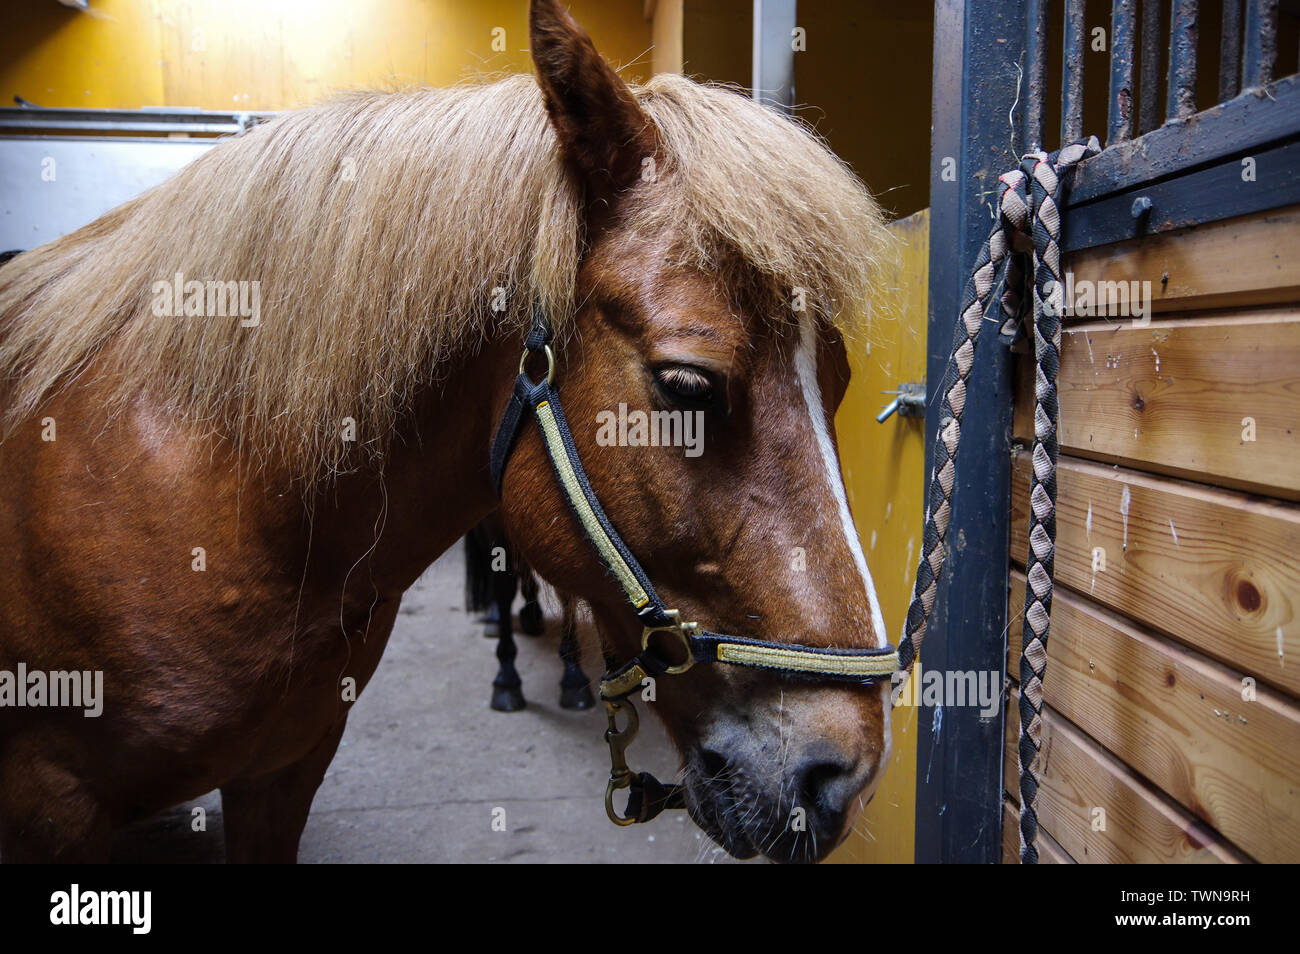 Sorrel horse in stable Stock Photo